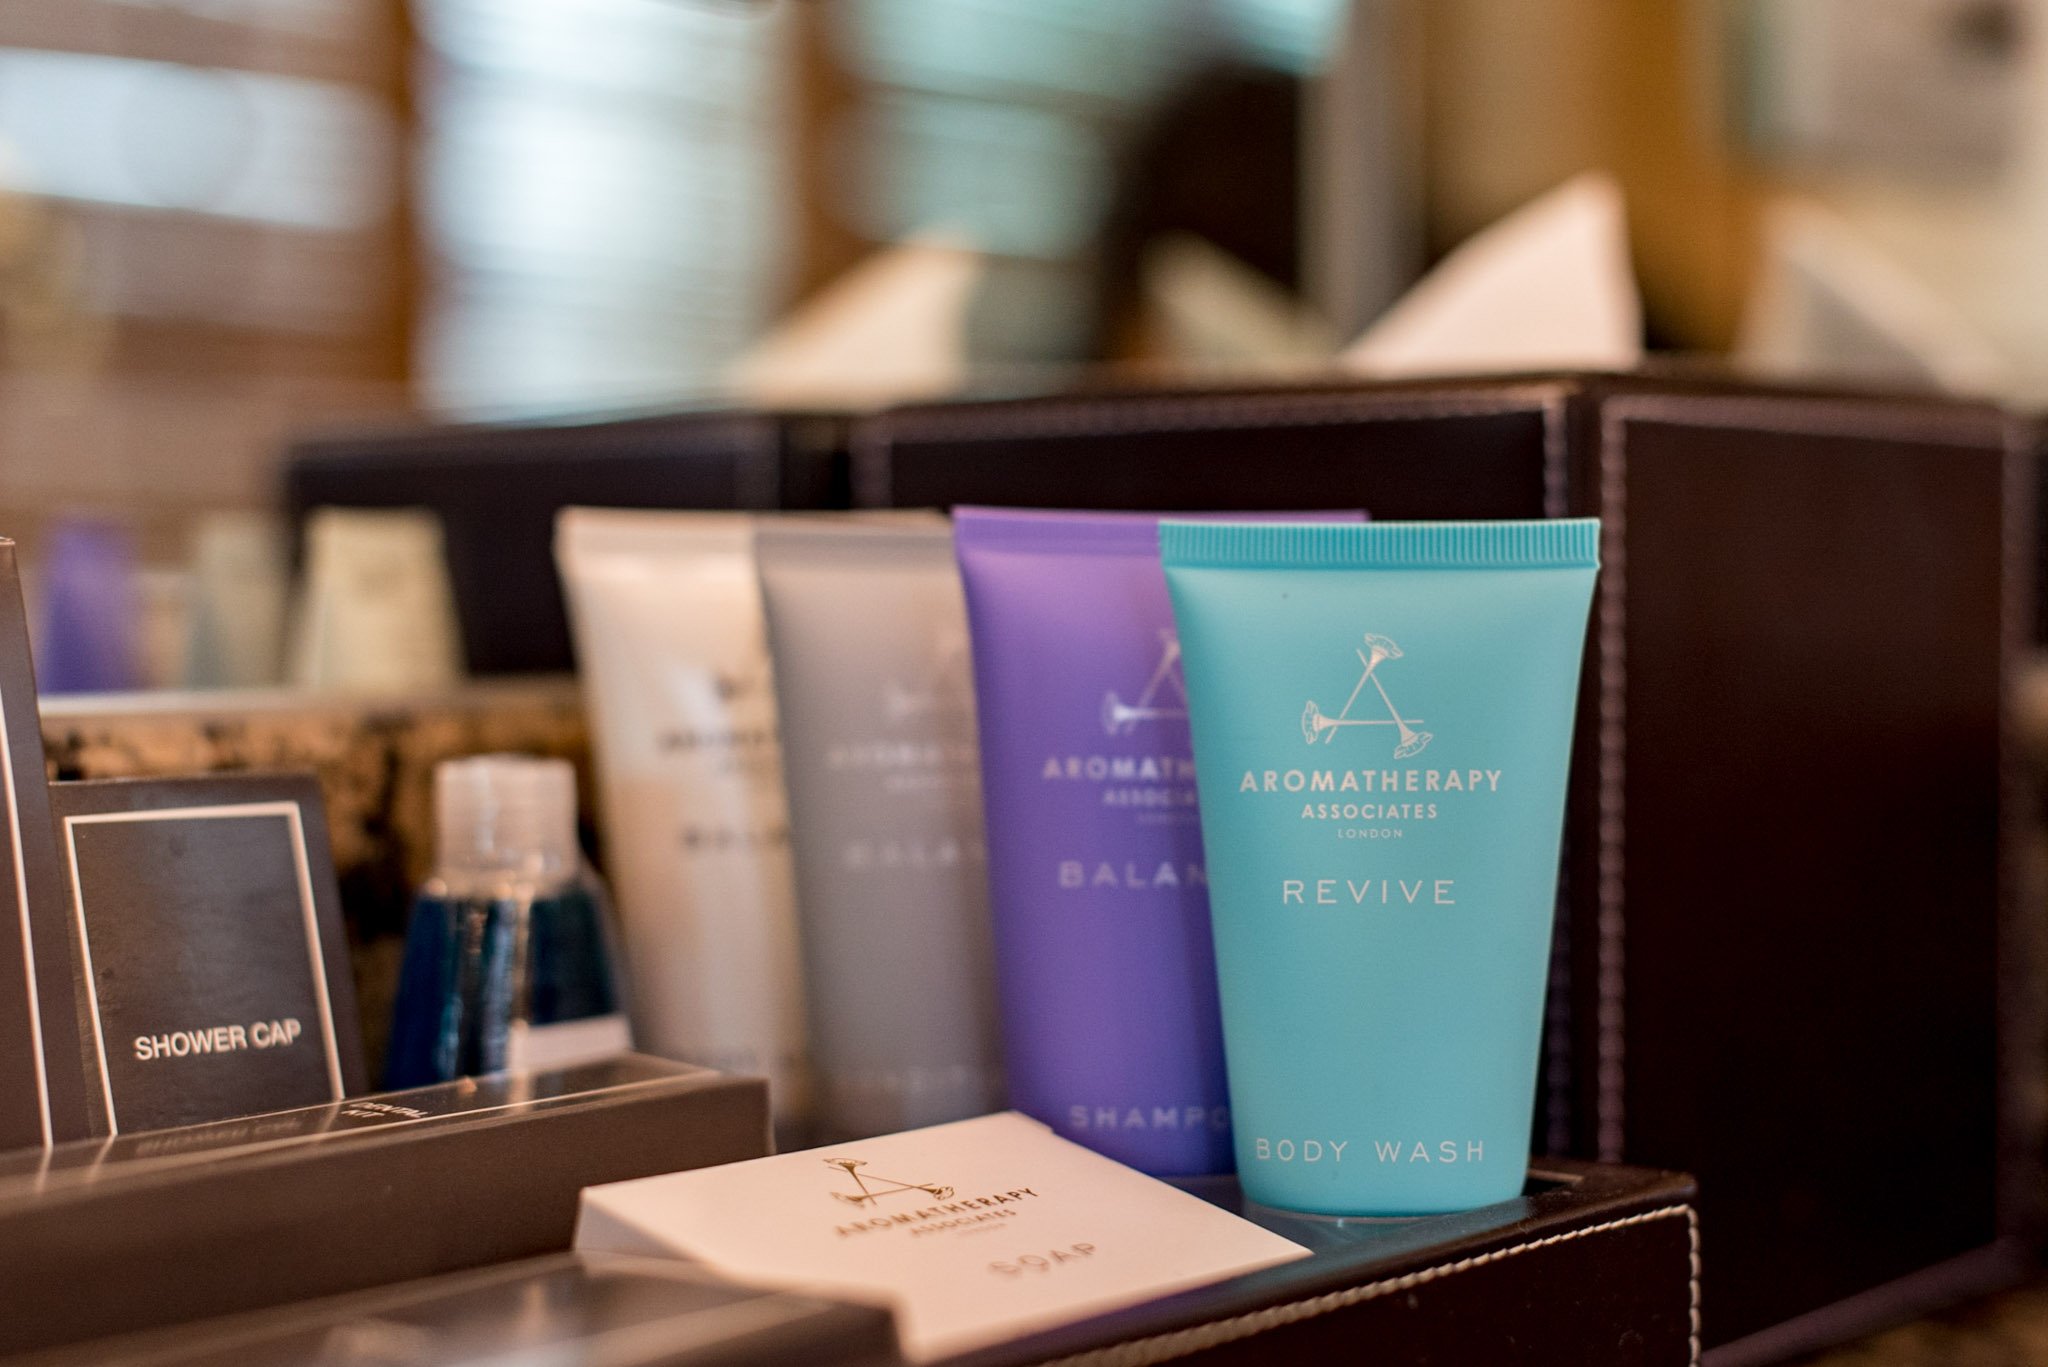 Bathroom Amenities - Aromatherapy Associates  Executive Suite - Conrad Bangkok